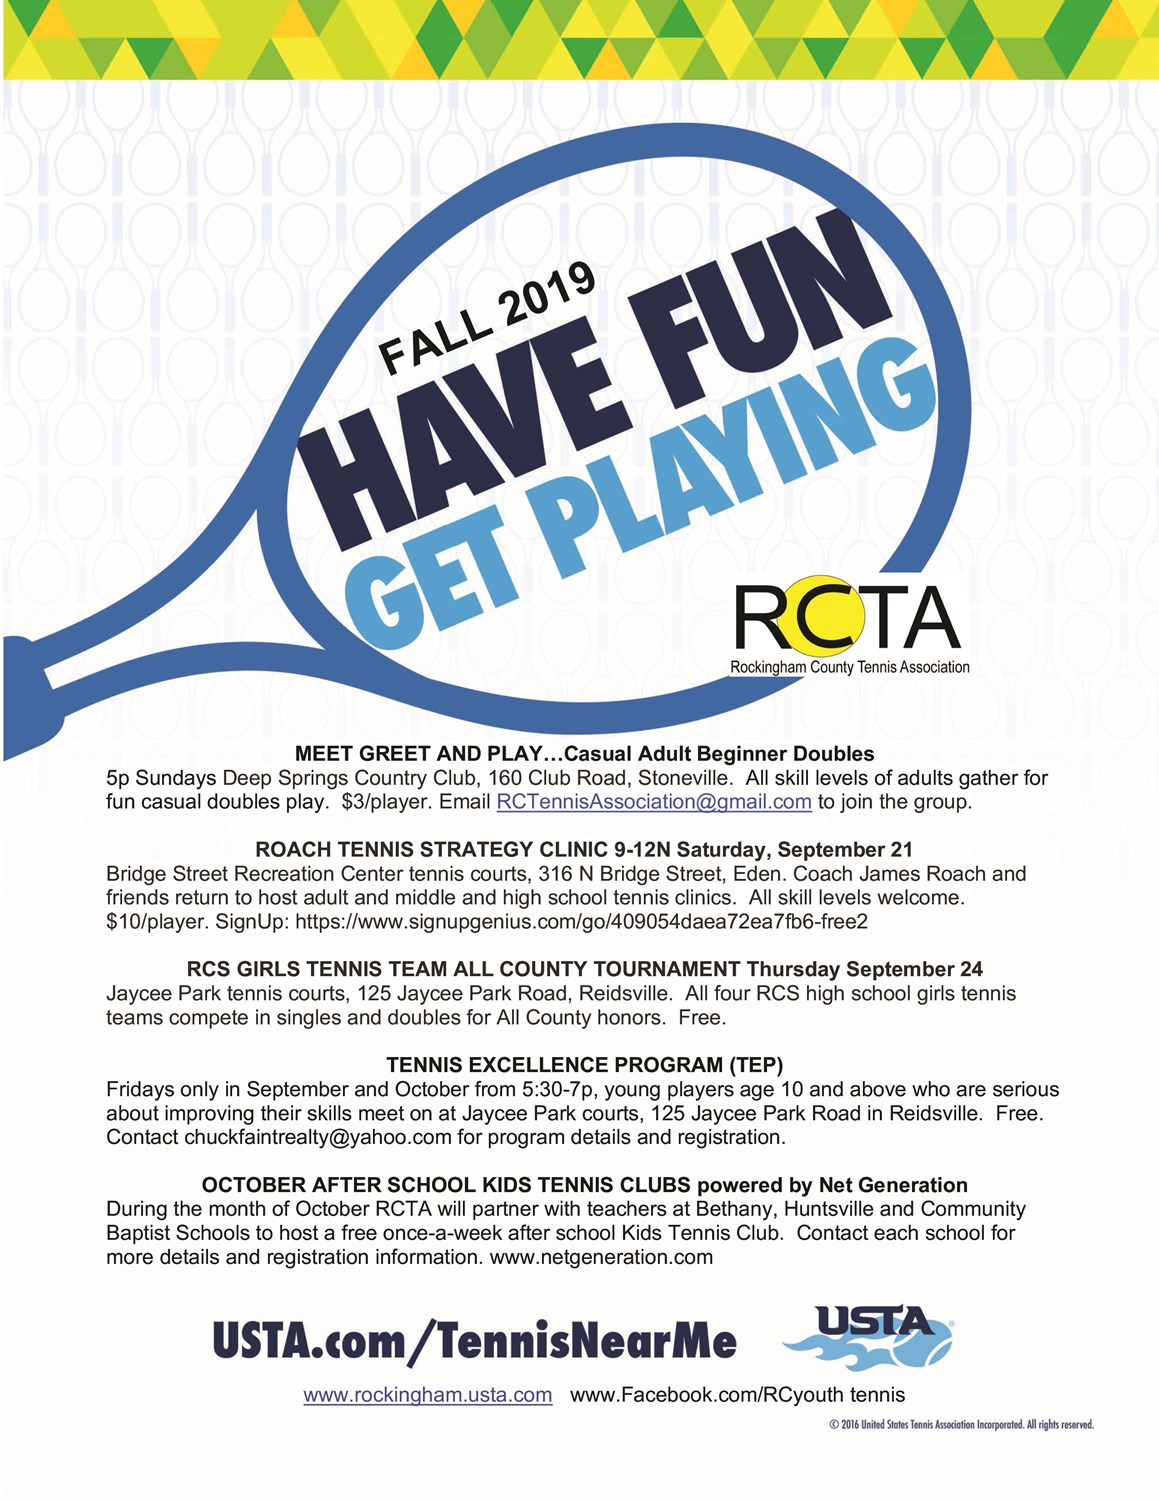 RC_Tennis_FAll_2019_Program_flyer-page-0